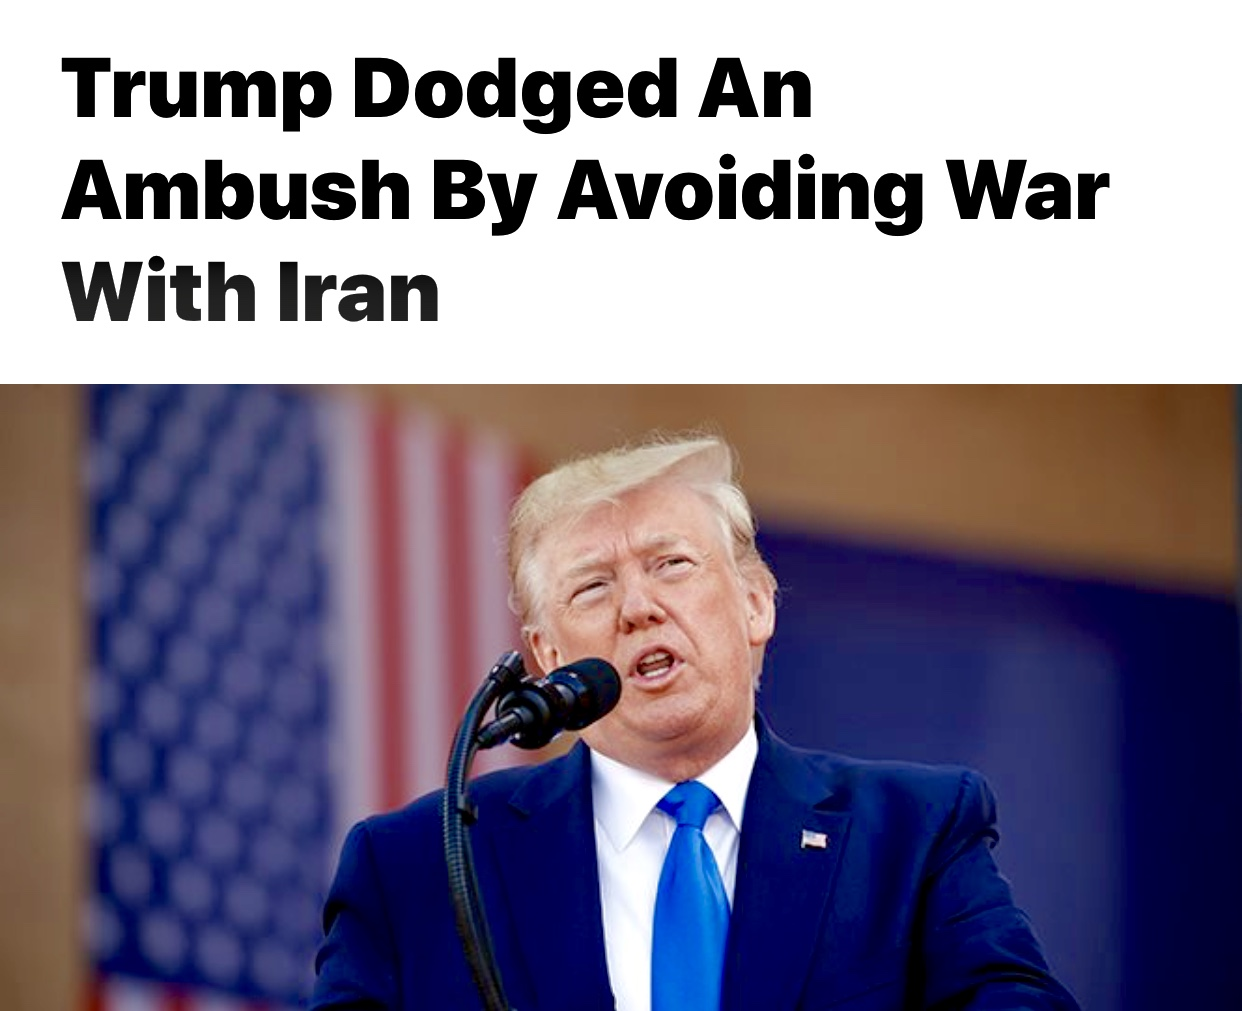 President Trump Dodged An Ambush By Avoiding War With Iran